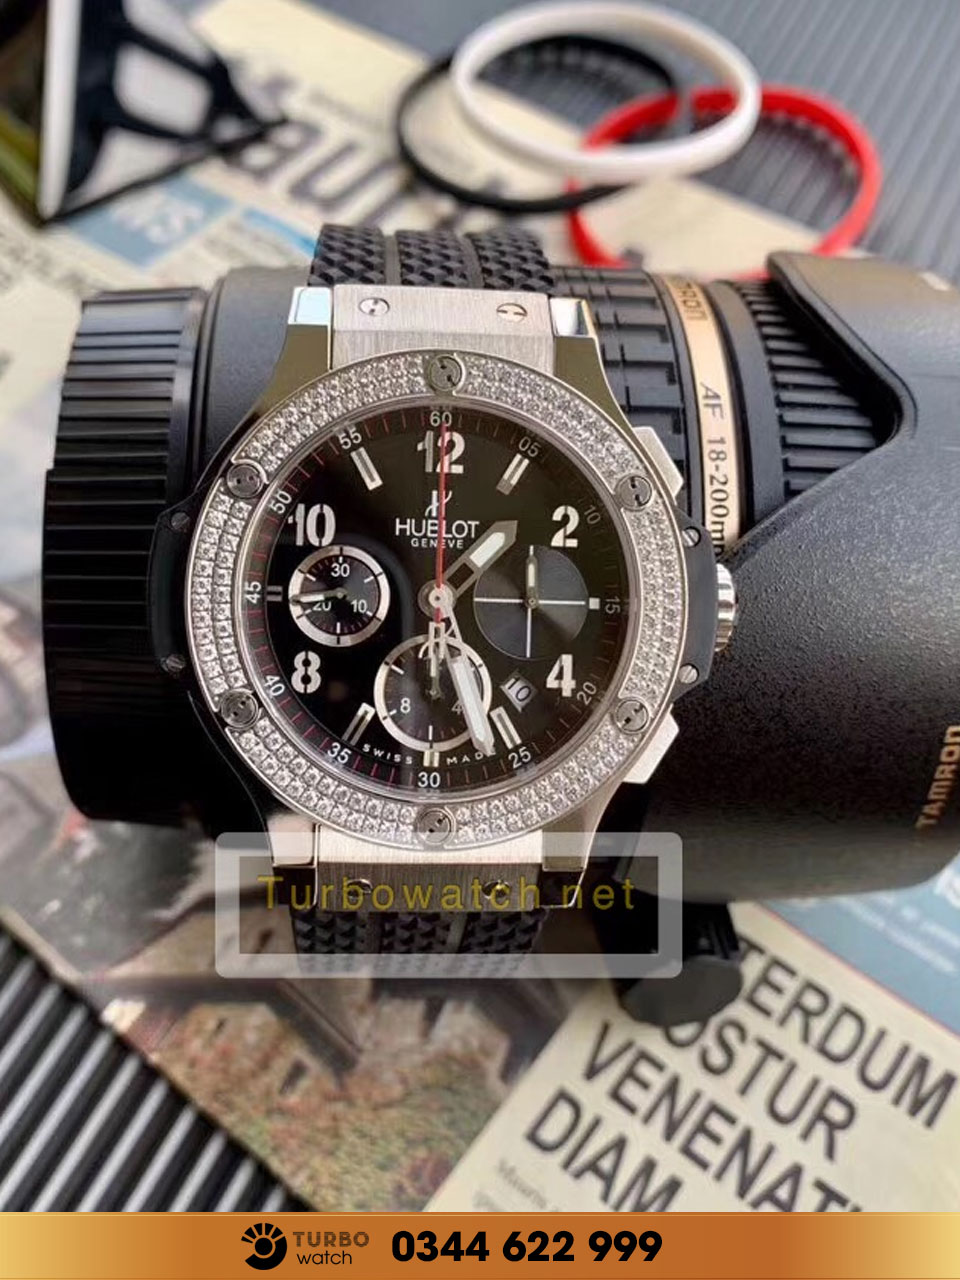 Hublot BIG BANG CHRONOGRAPH DIAMOND PAVE fake 1-1 siêu cấp